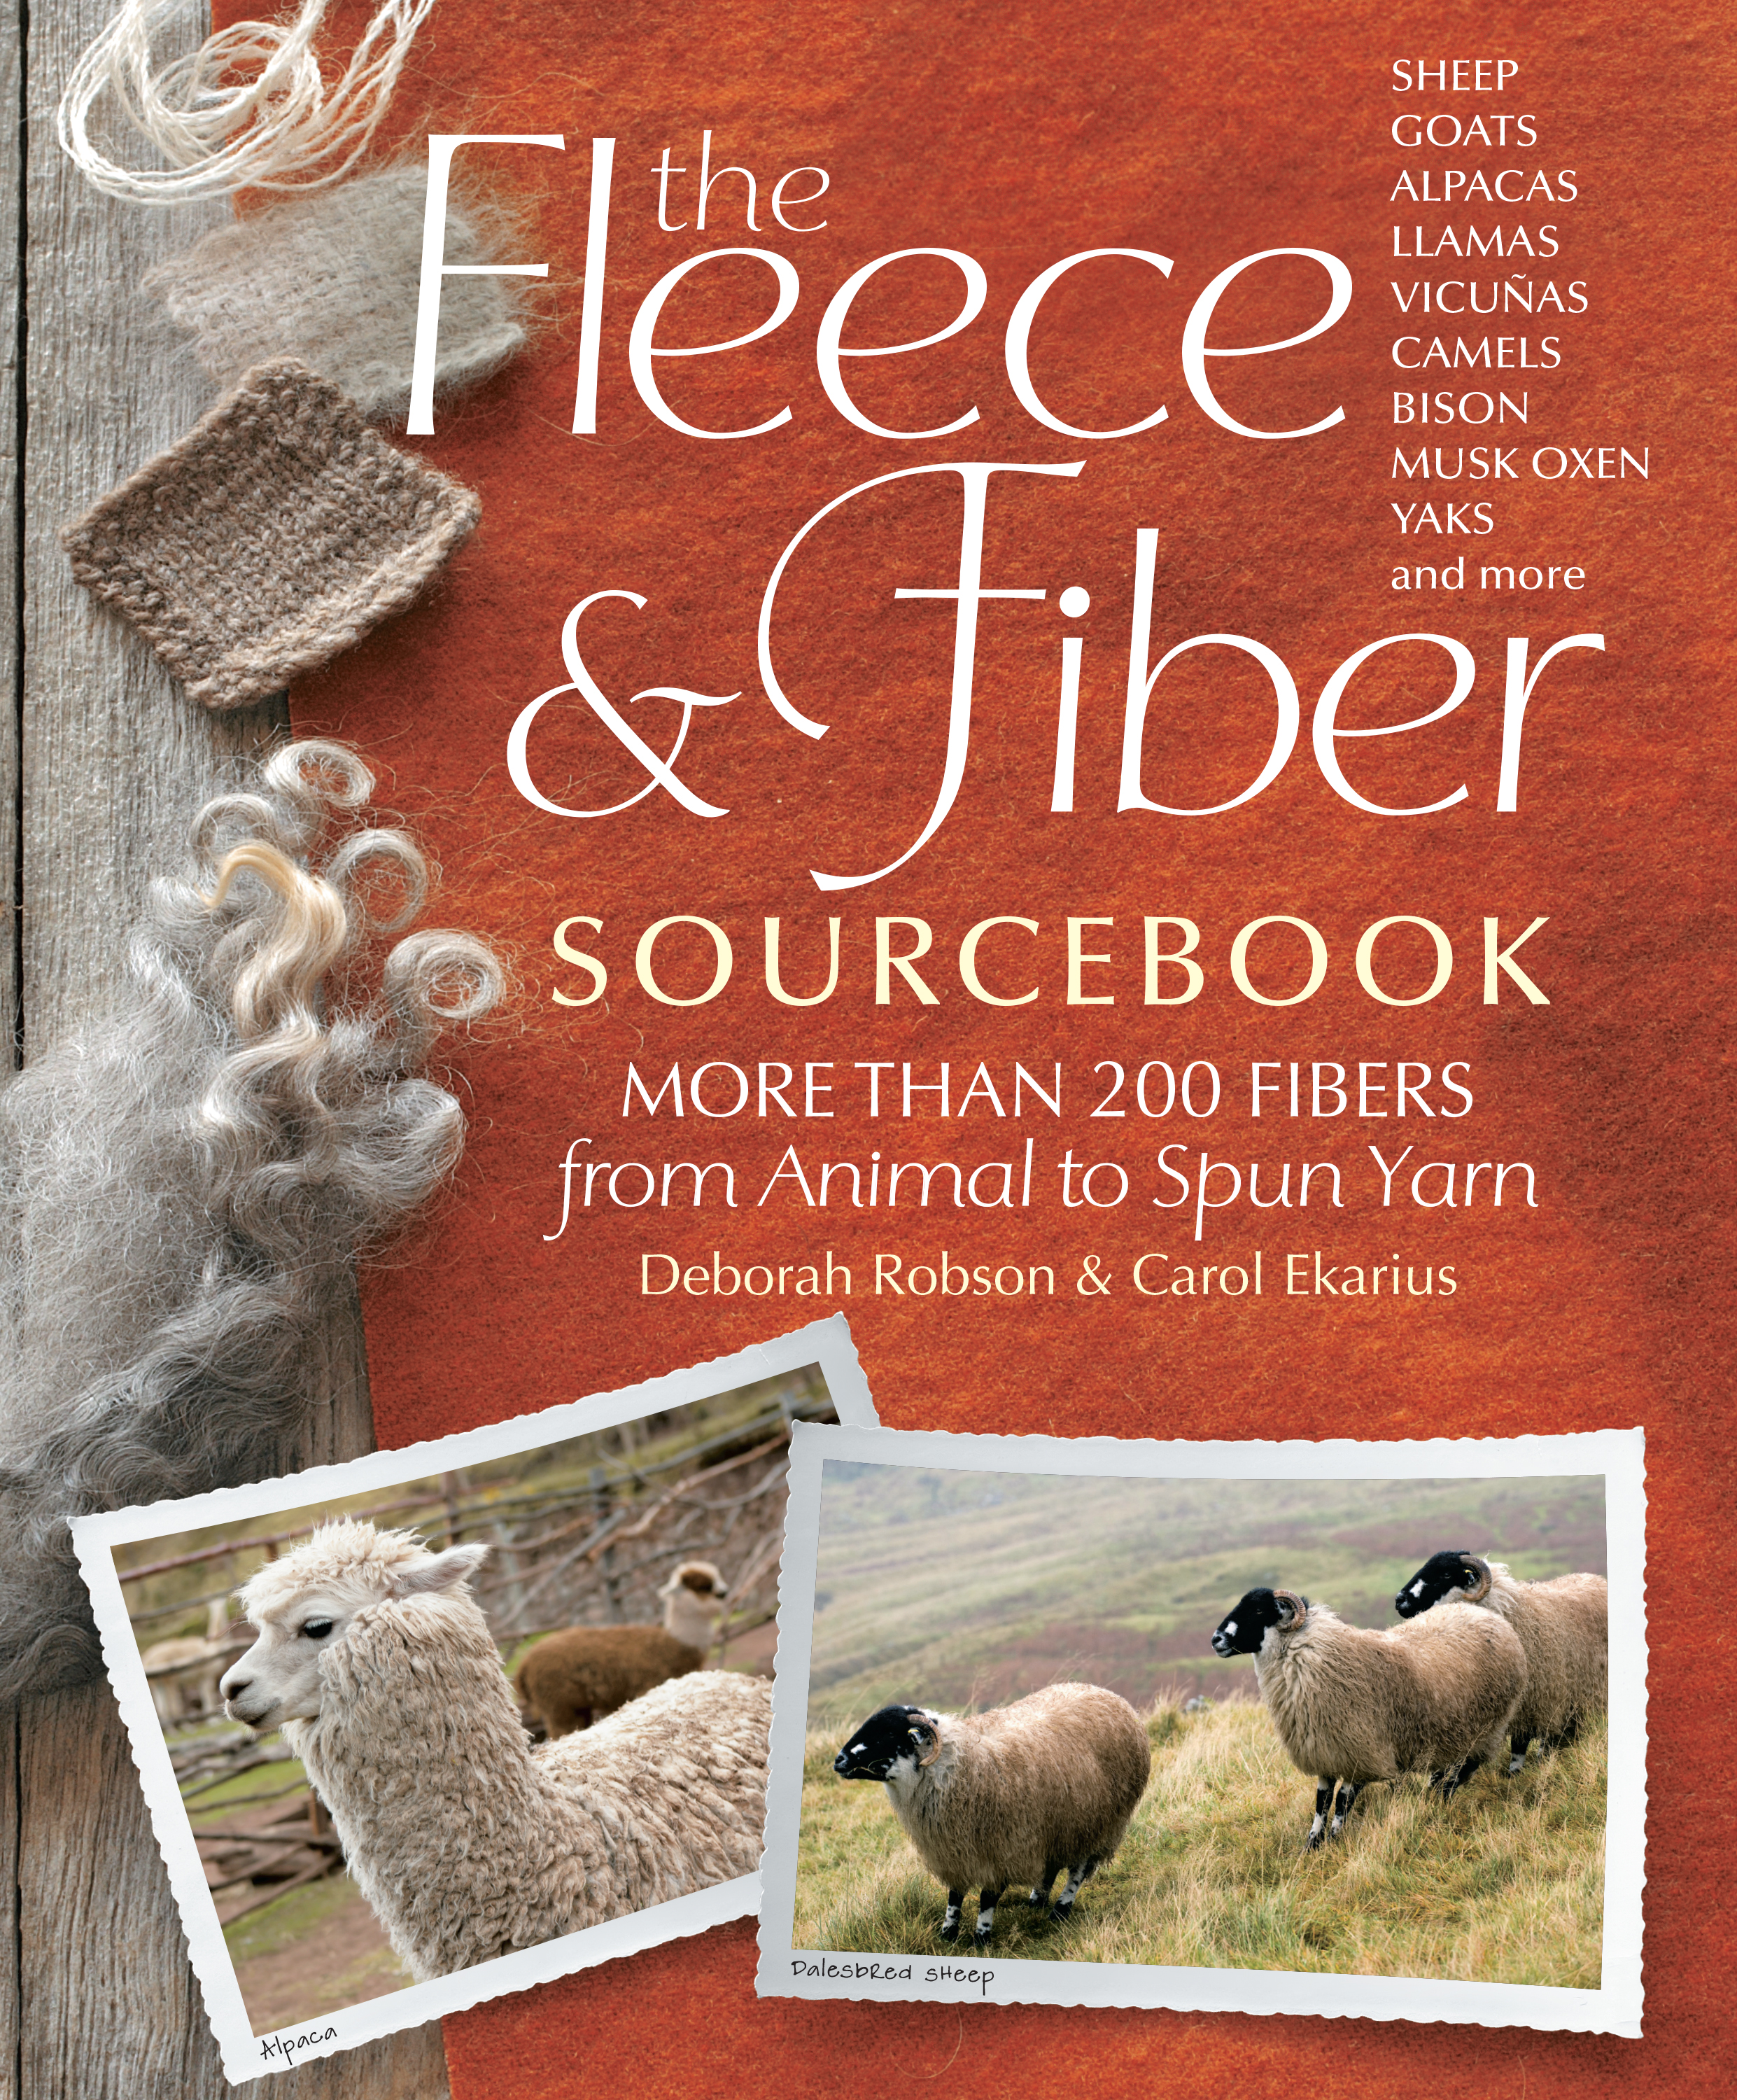 The Fleece & Fiber Sourcebook More Than 200 Fibers, from Animal to Spun Yarn - Carol Ekarius